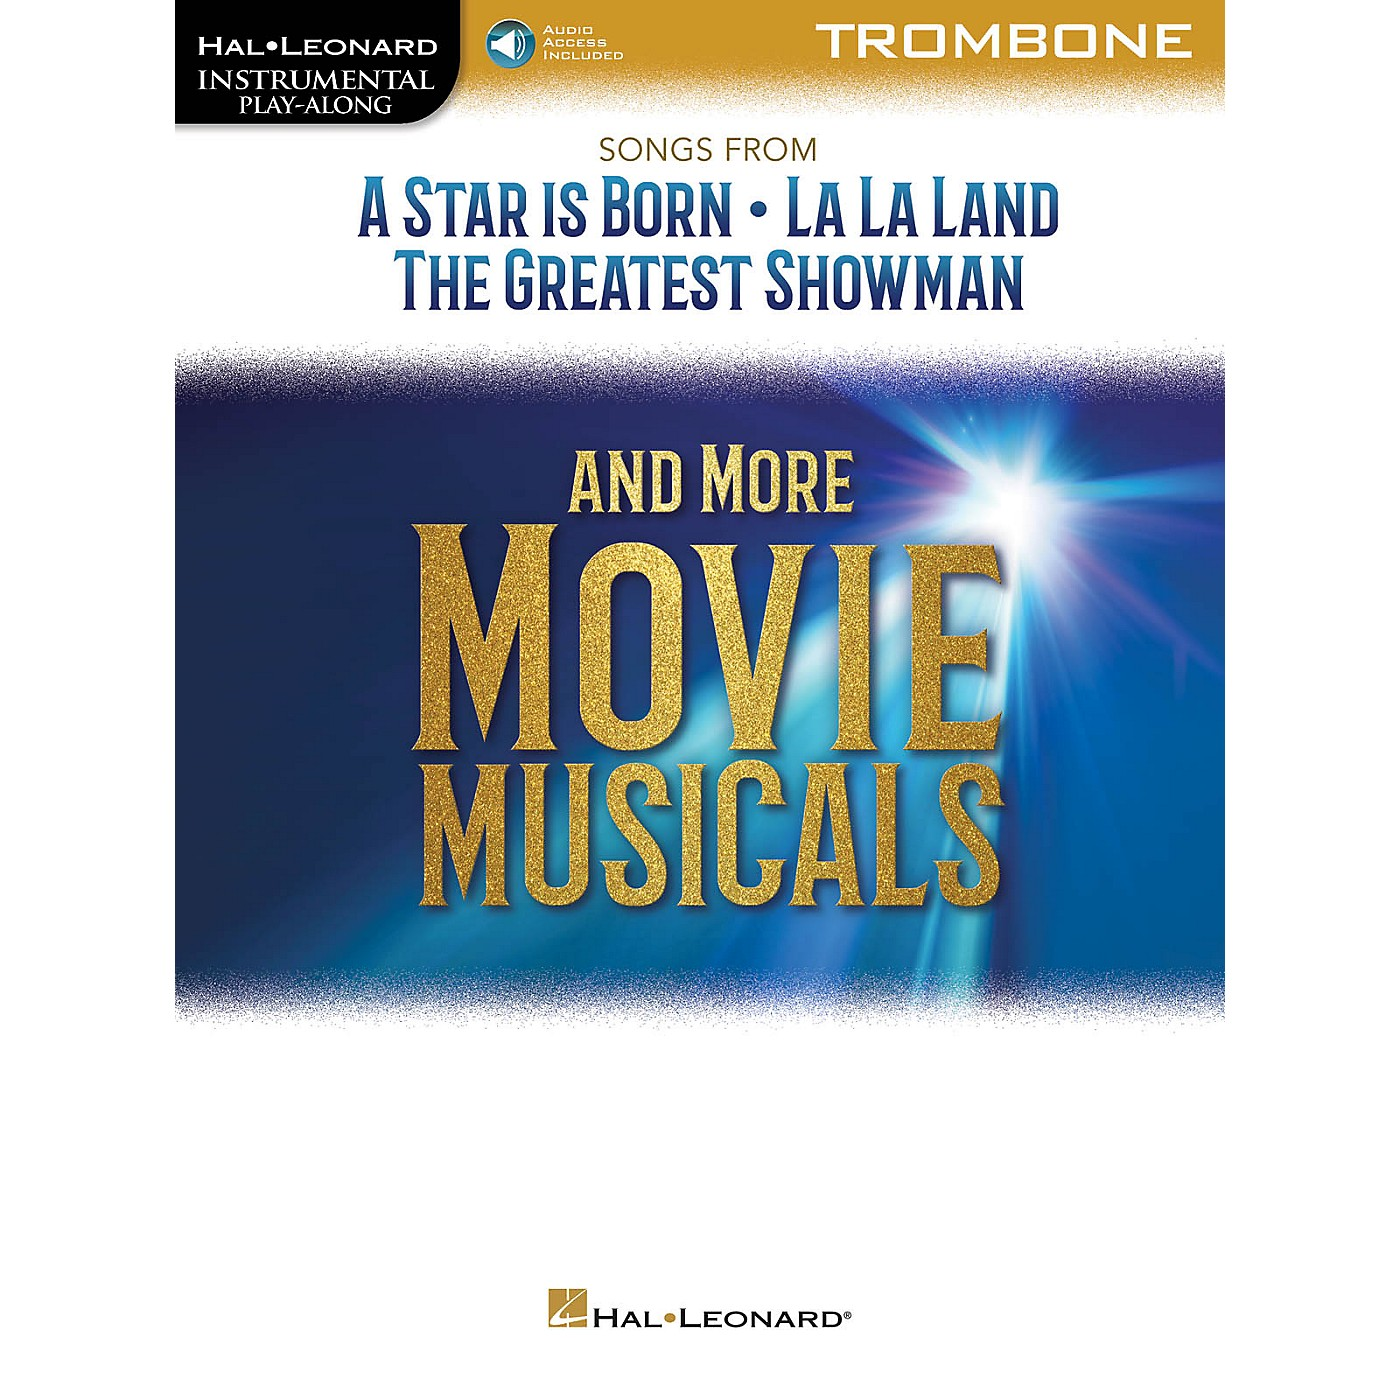 Hal Leonard Songs from A Star Is Born, La La Land and The Greatest Showman Instrumental Play-Along for Trombone Book/Audio Online thumbnail